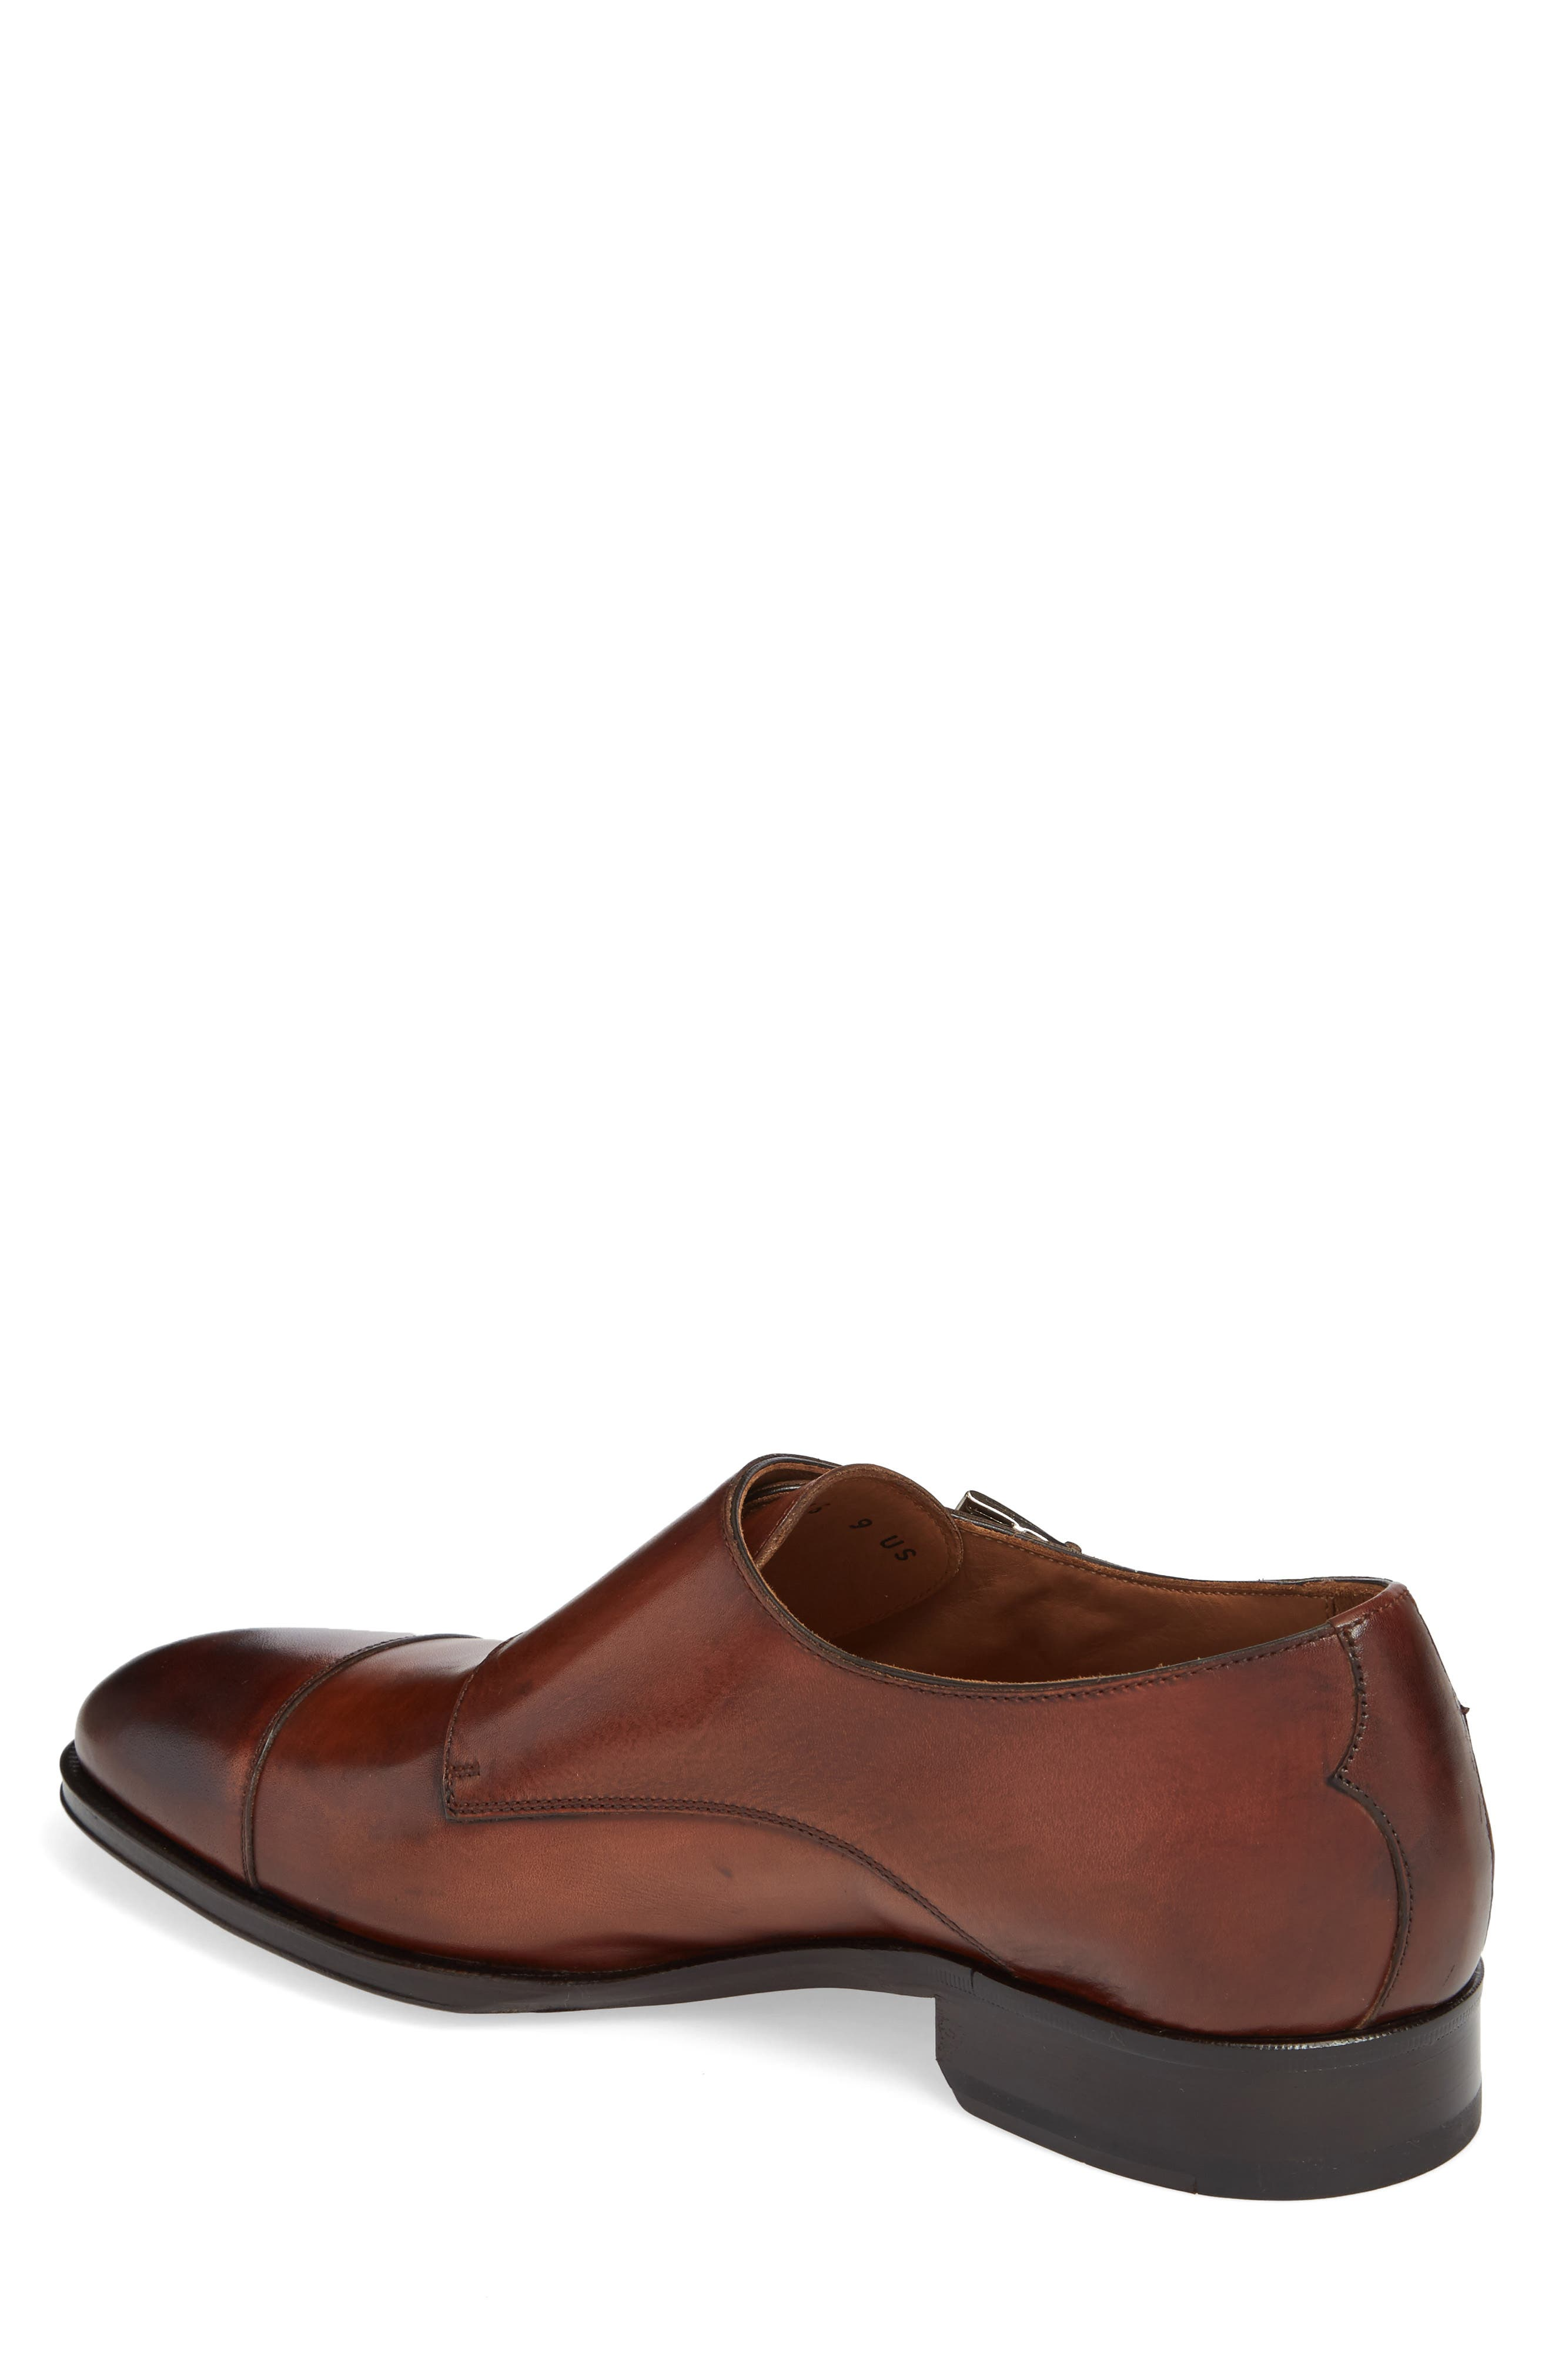 Gallo Bianco Double Monk Strap Shoe,                             Alternate thumbnail 2, color,                             Marble Brown